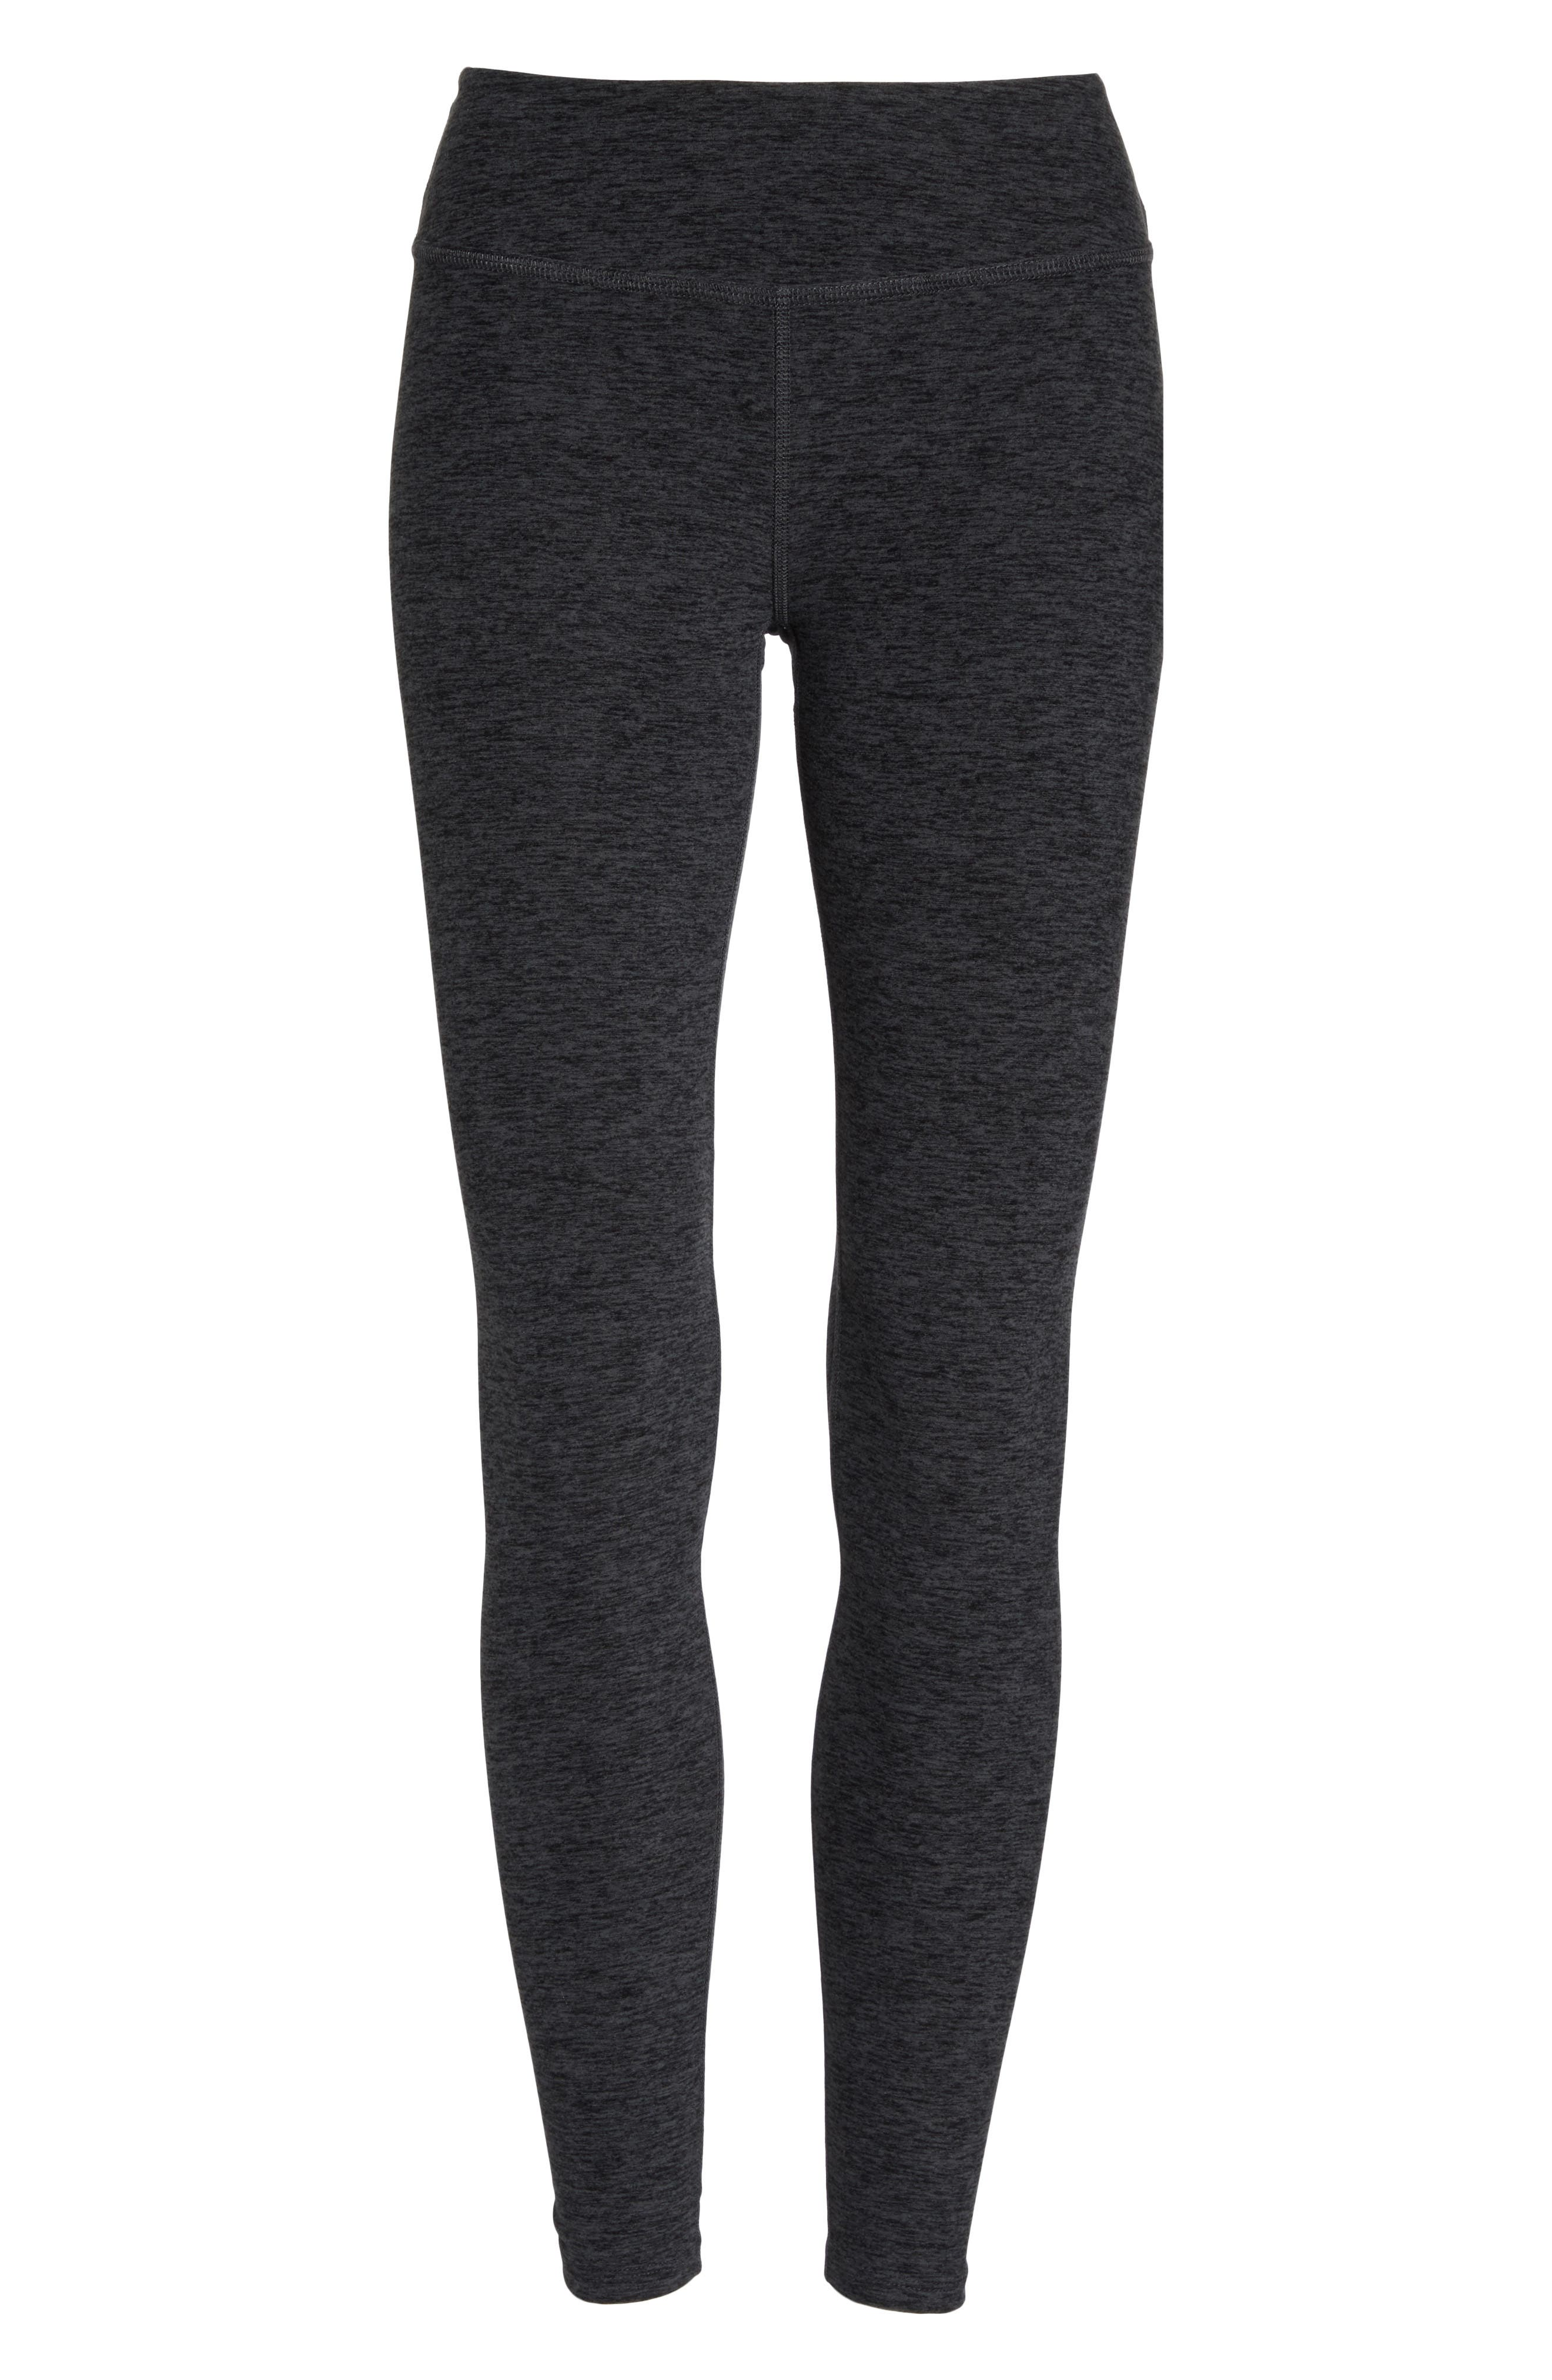 Crisscross Crop Leggings,                             Alternate thumbnail 7, color,                             001